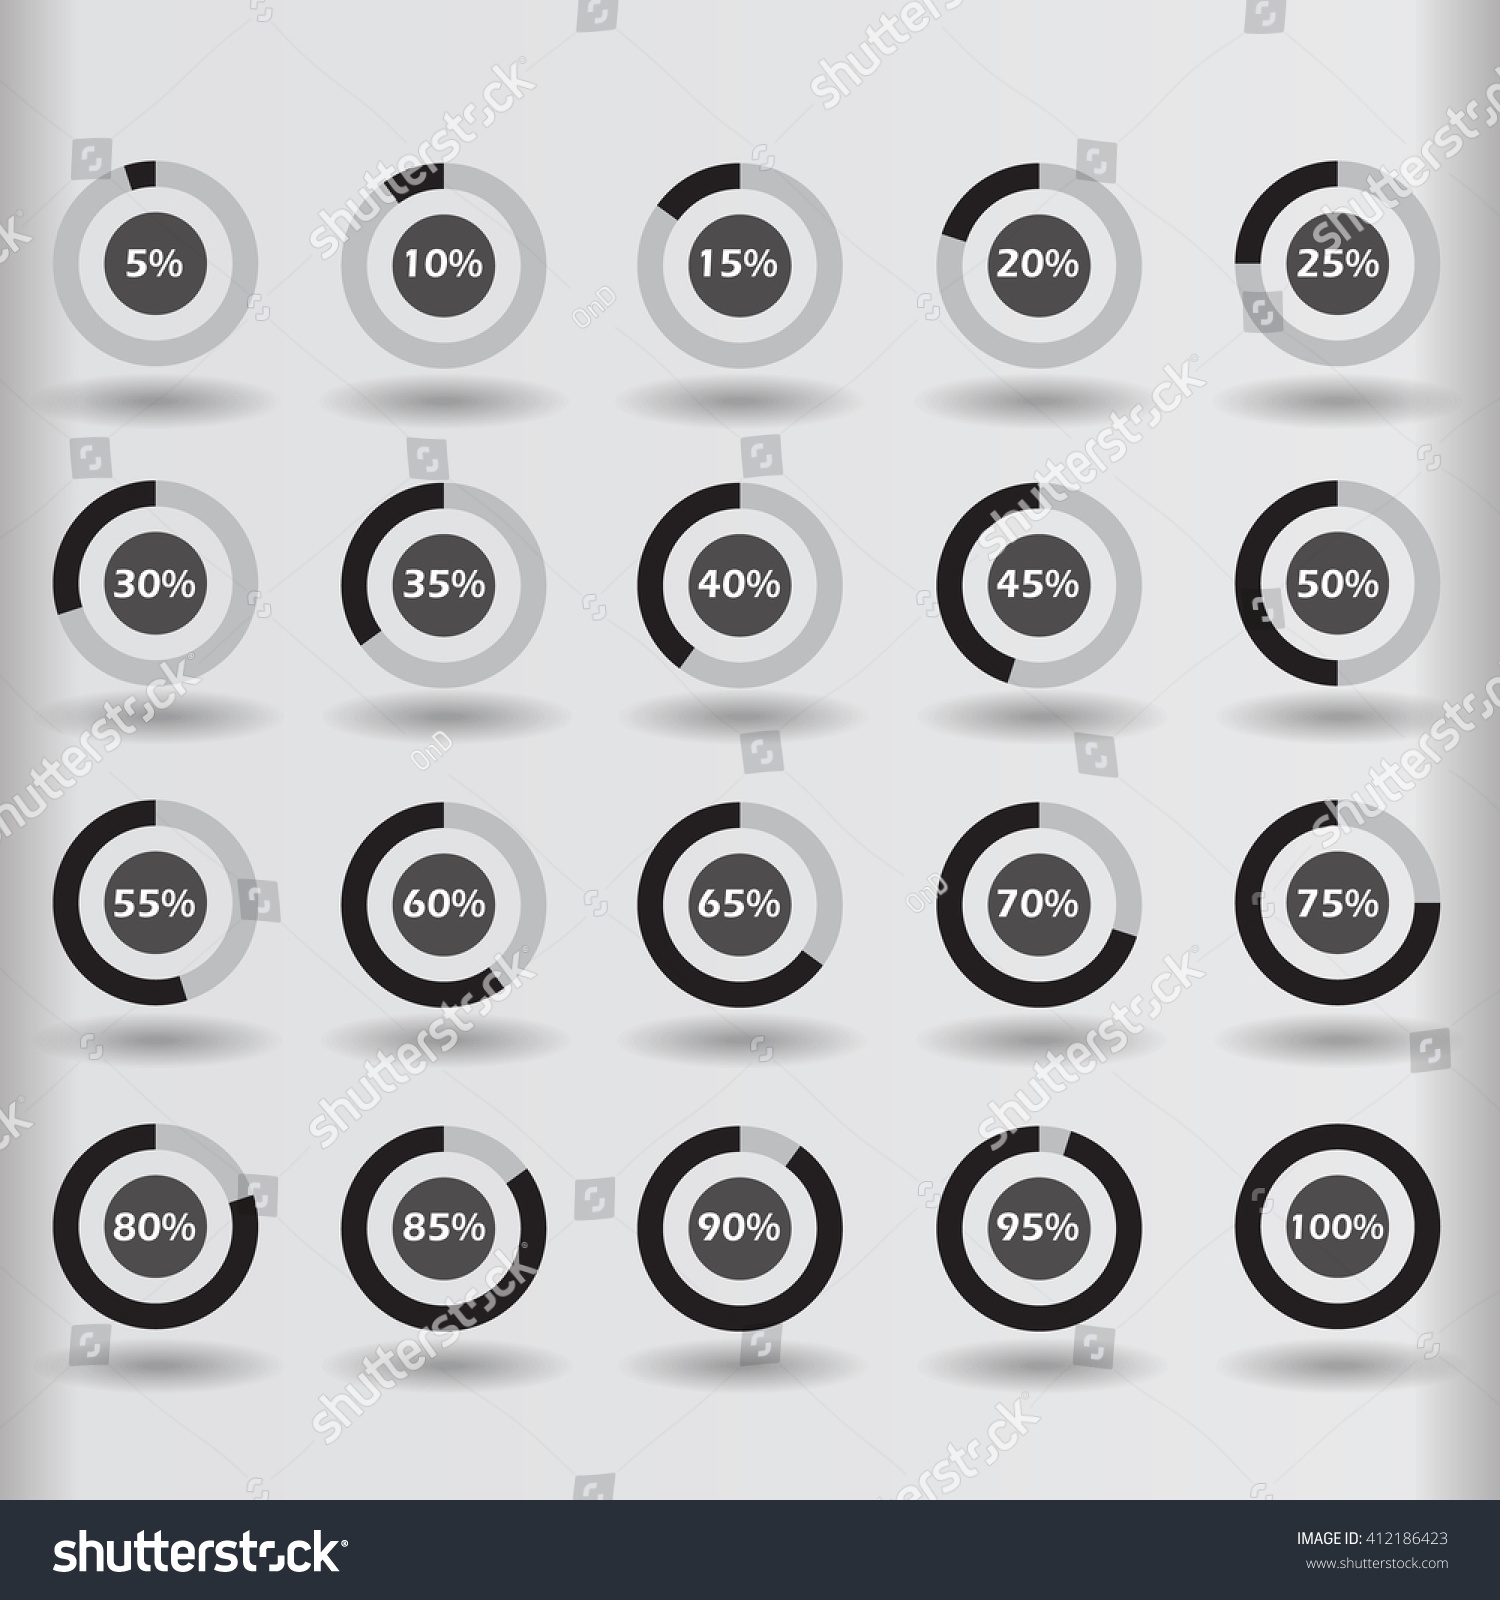 Icons Template Pie Graph Circle Percentage Stock Illustration ...